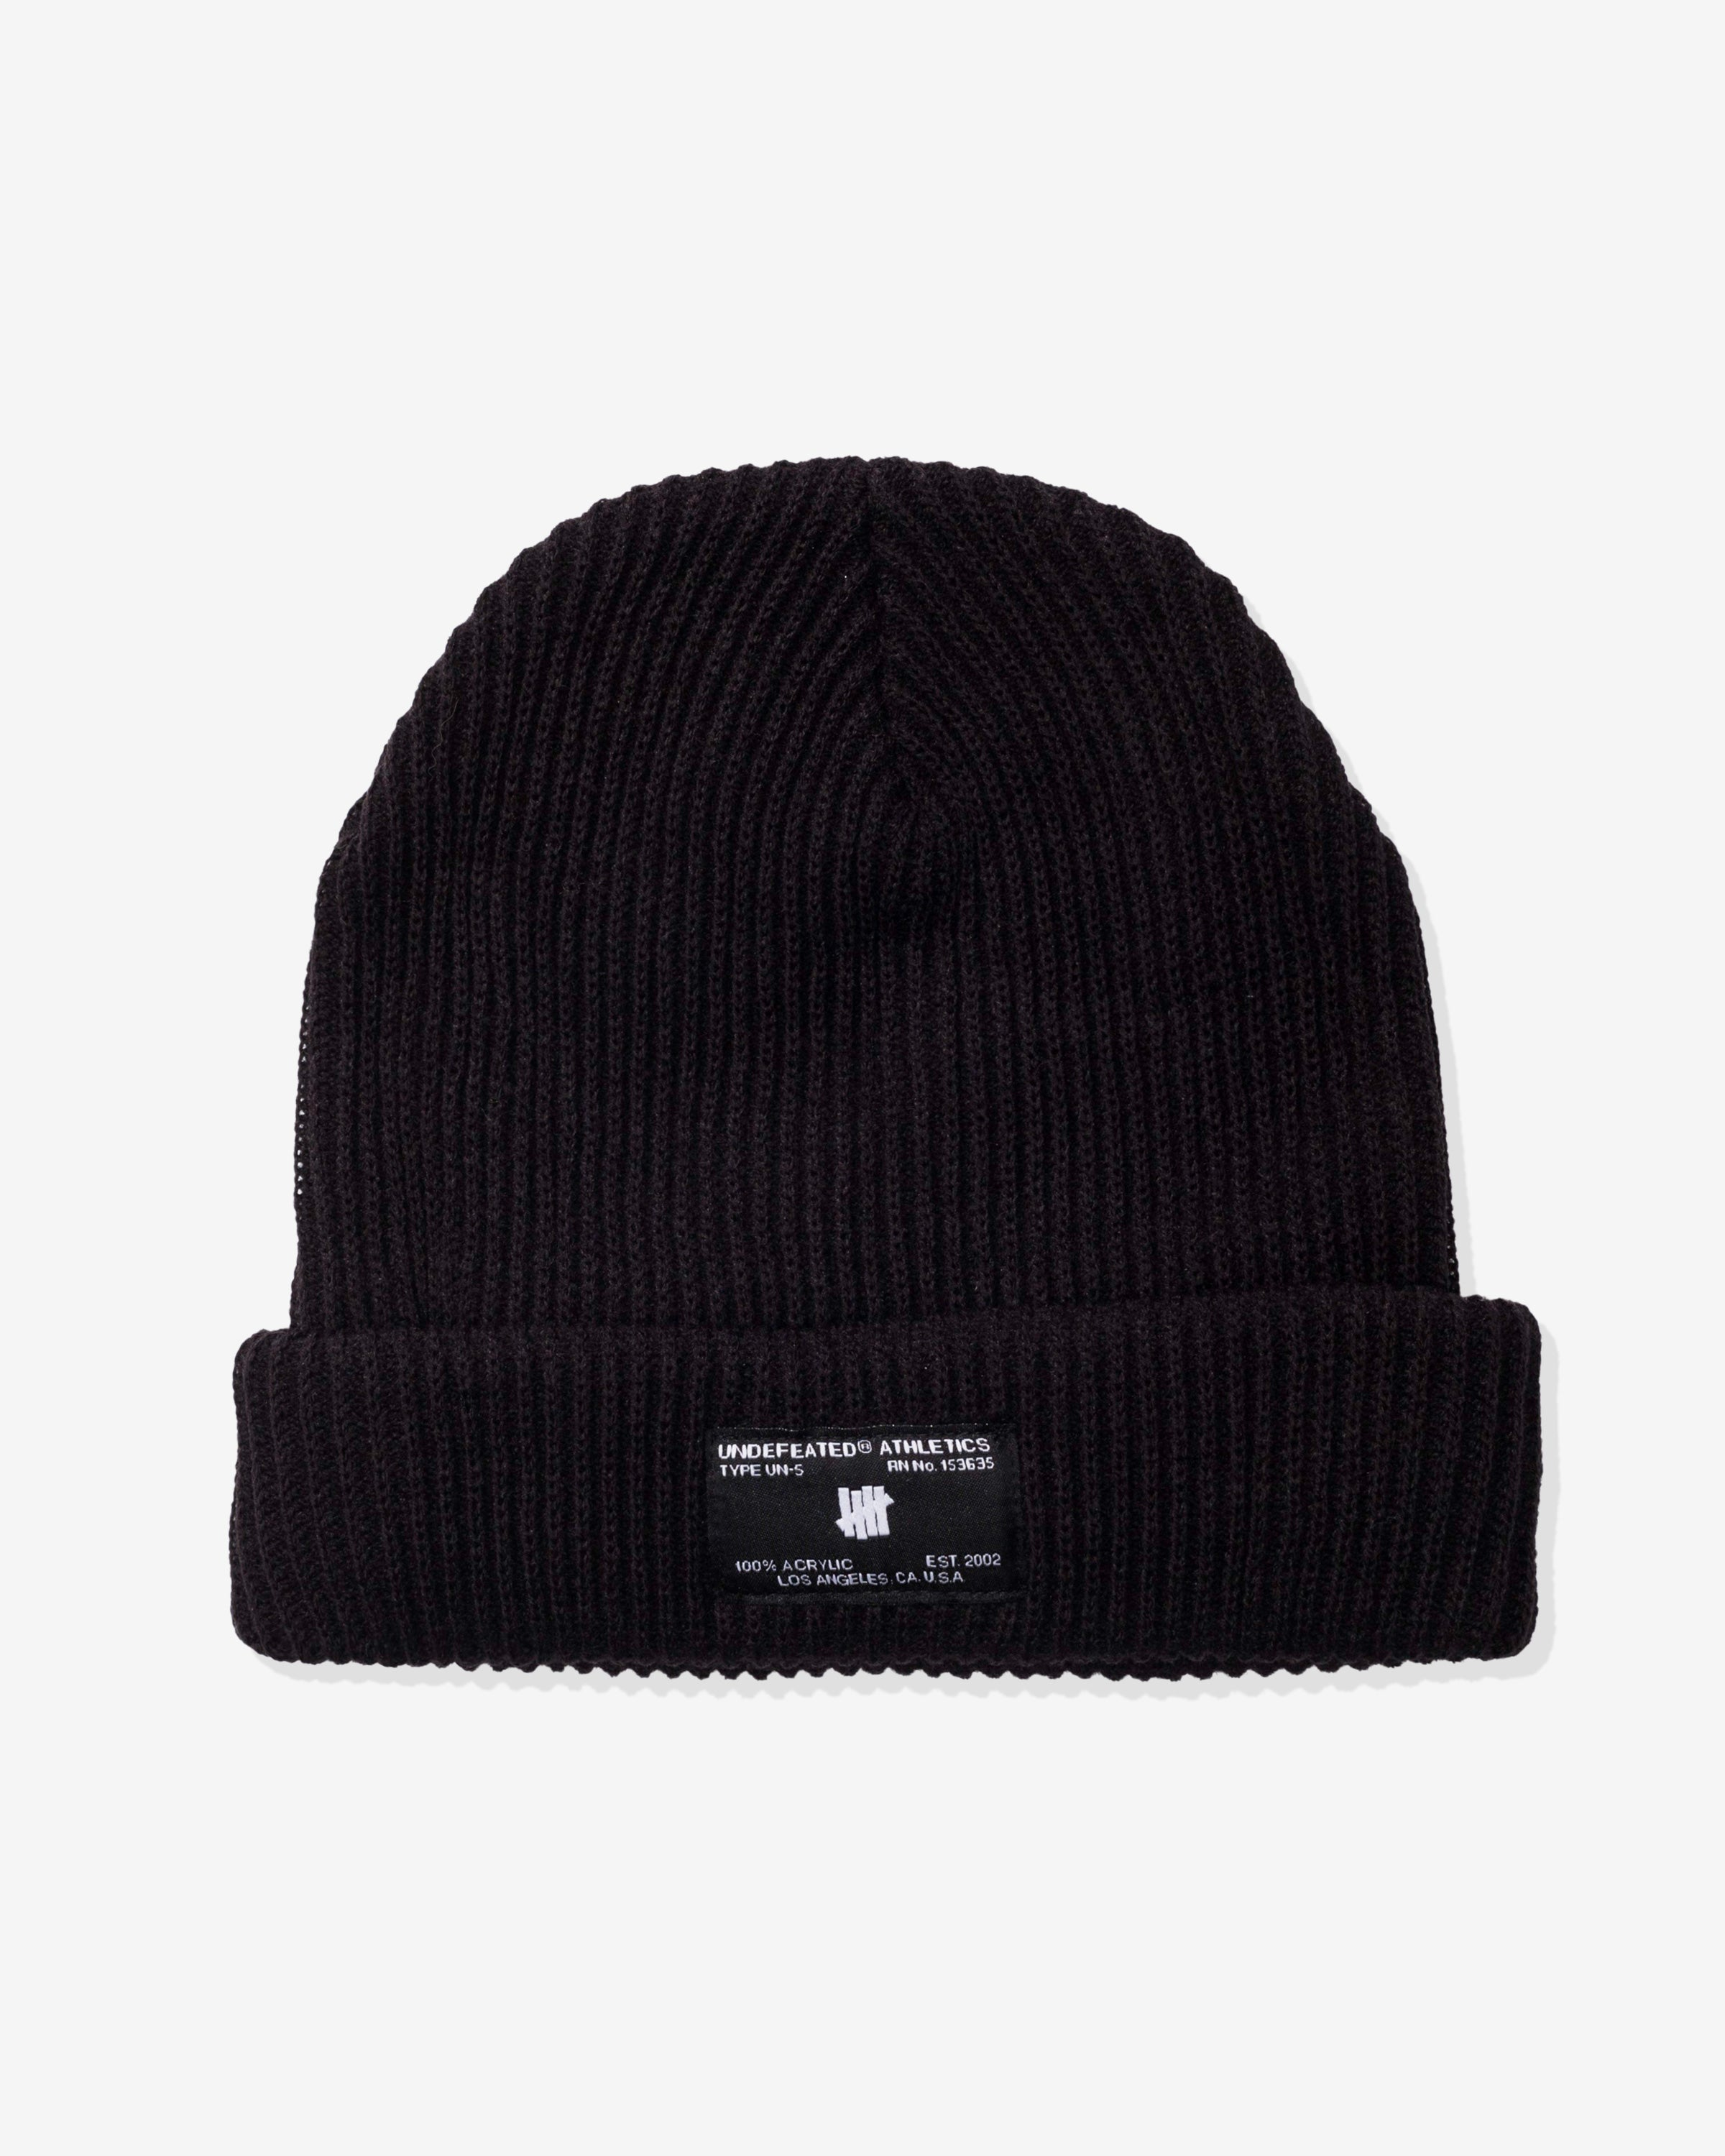 UNDEFEATED MILL SPEC DOUBLE CUFF BEANIE - BLACK